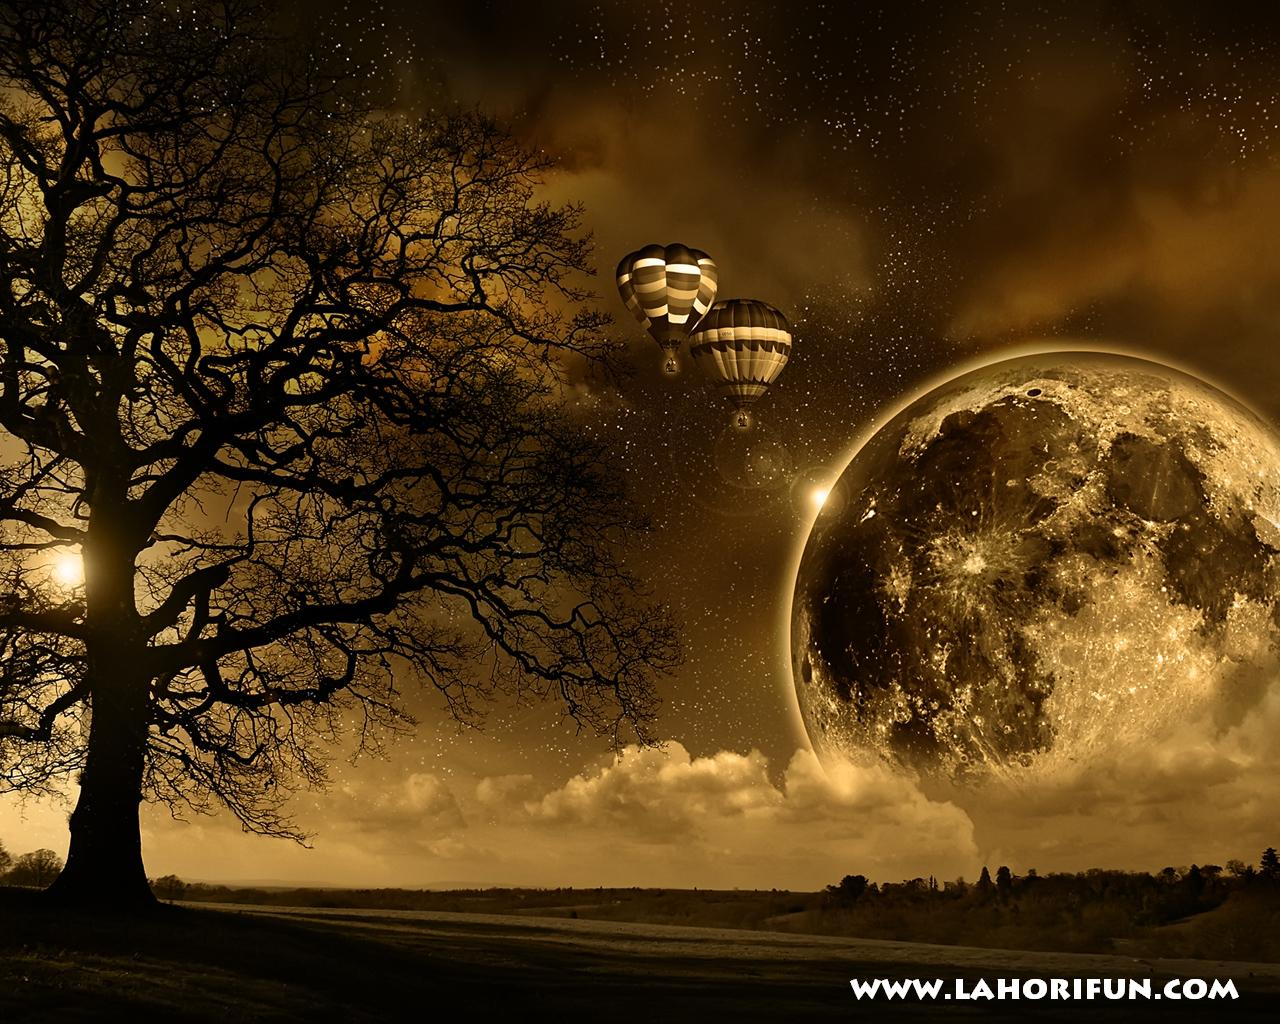 http://1.bp.blogspot.com/_kFiLt3irDuM/TB903xlAO0I/AAAAAAAAAdM/00LkioiBHeg/s1600/magic-moon-wallpaper_1280x1024.jpg